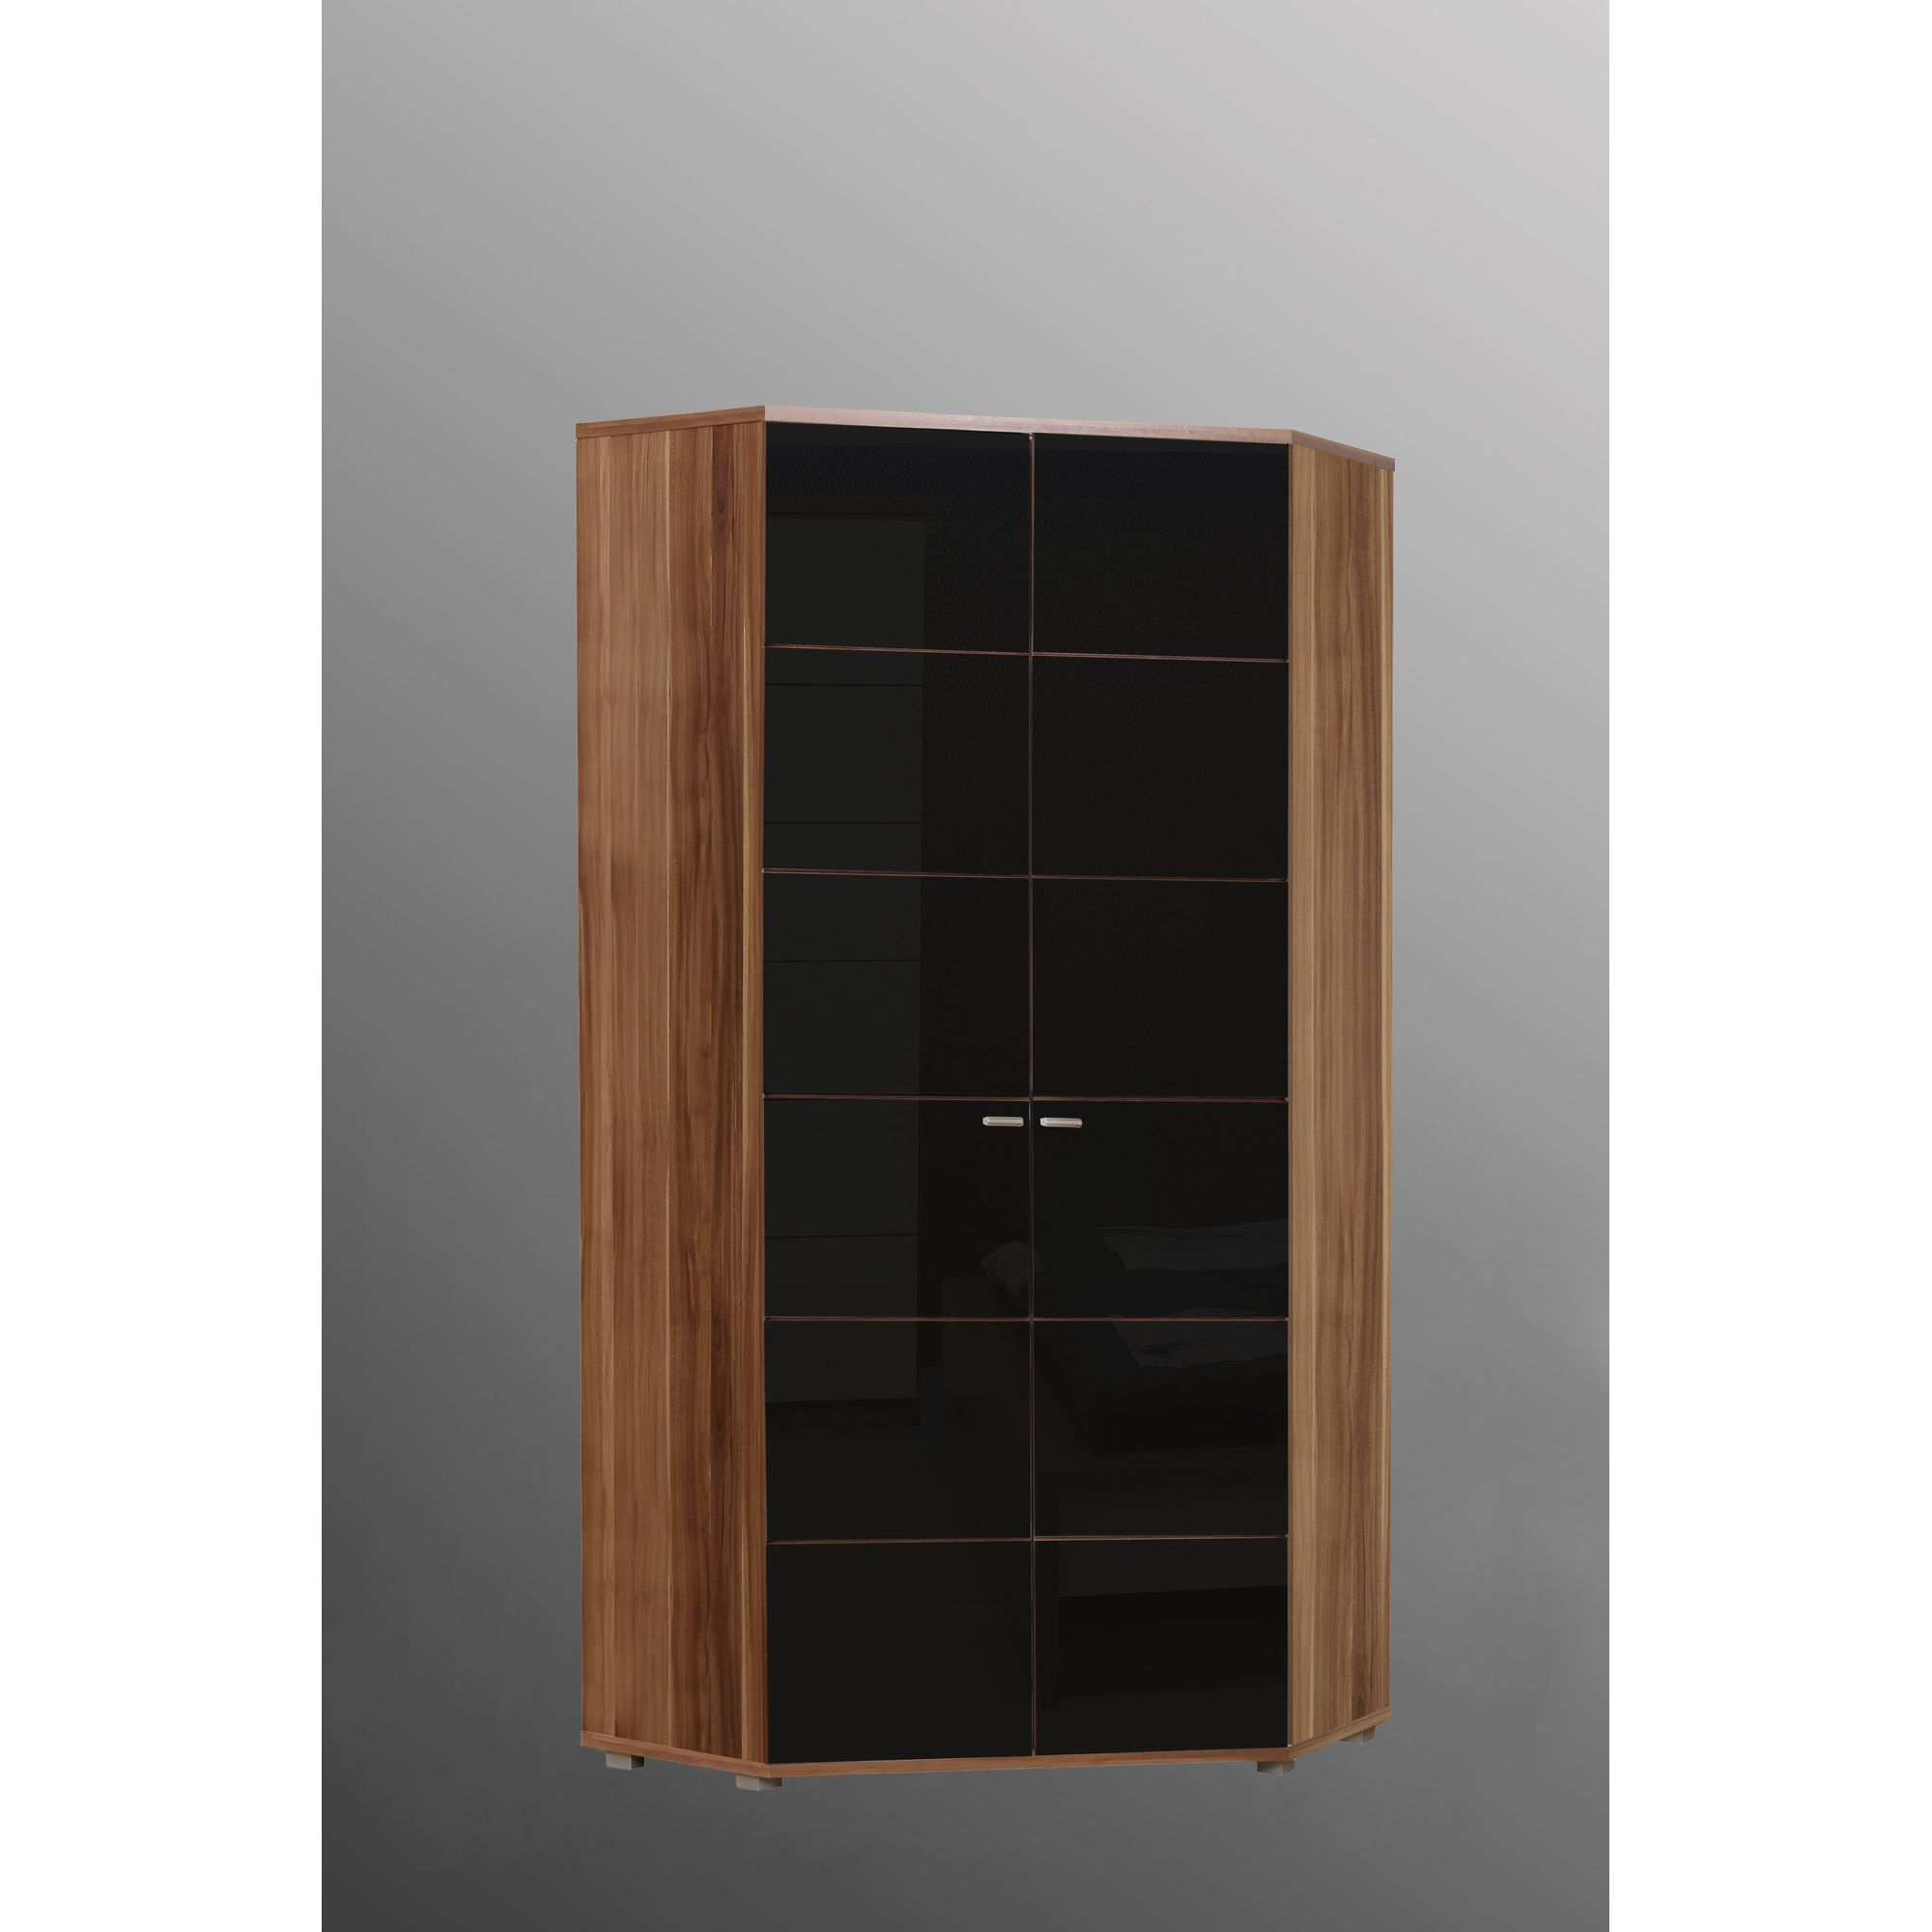 Ideal Furniture Anemone Corner Wardrobe - Walnut with Black Gloss